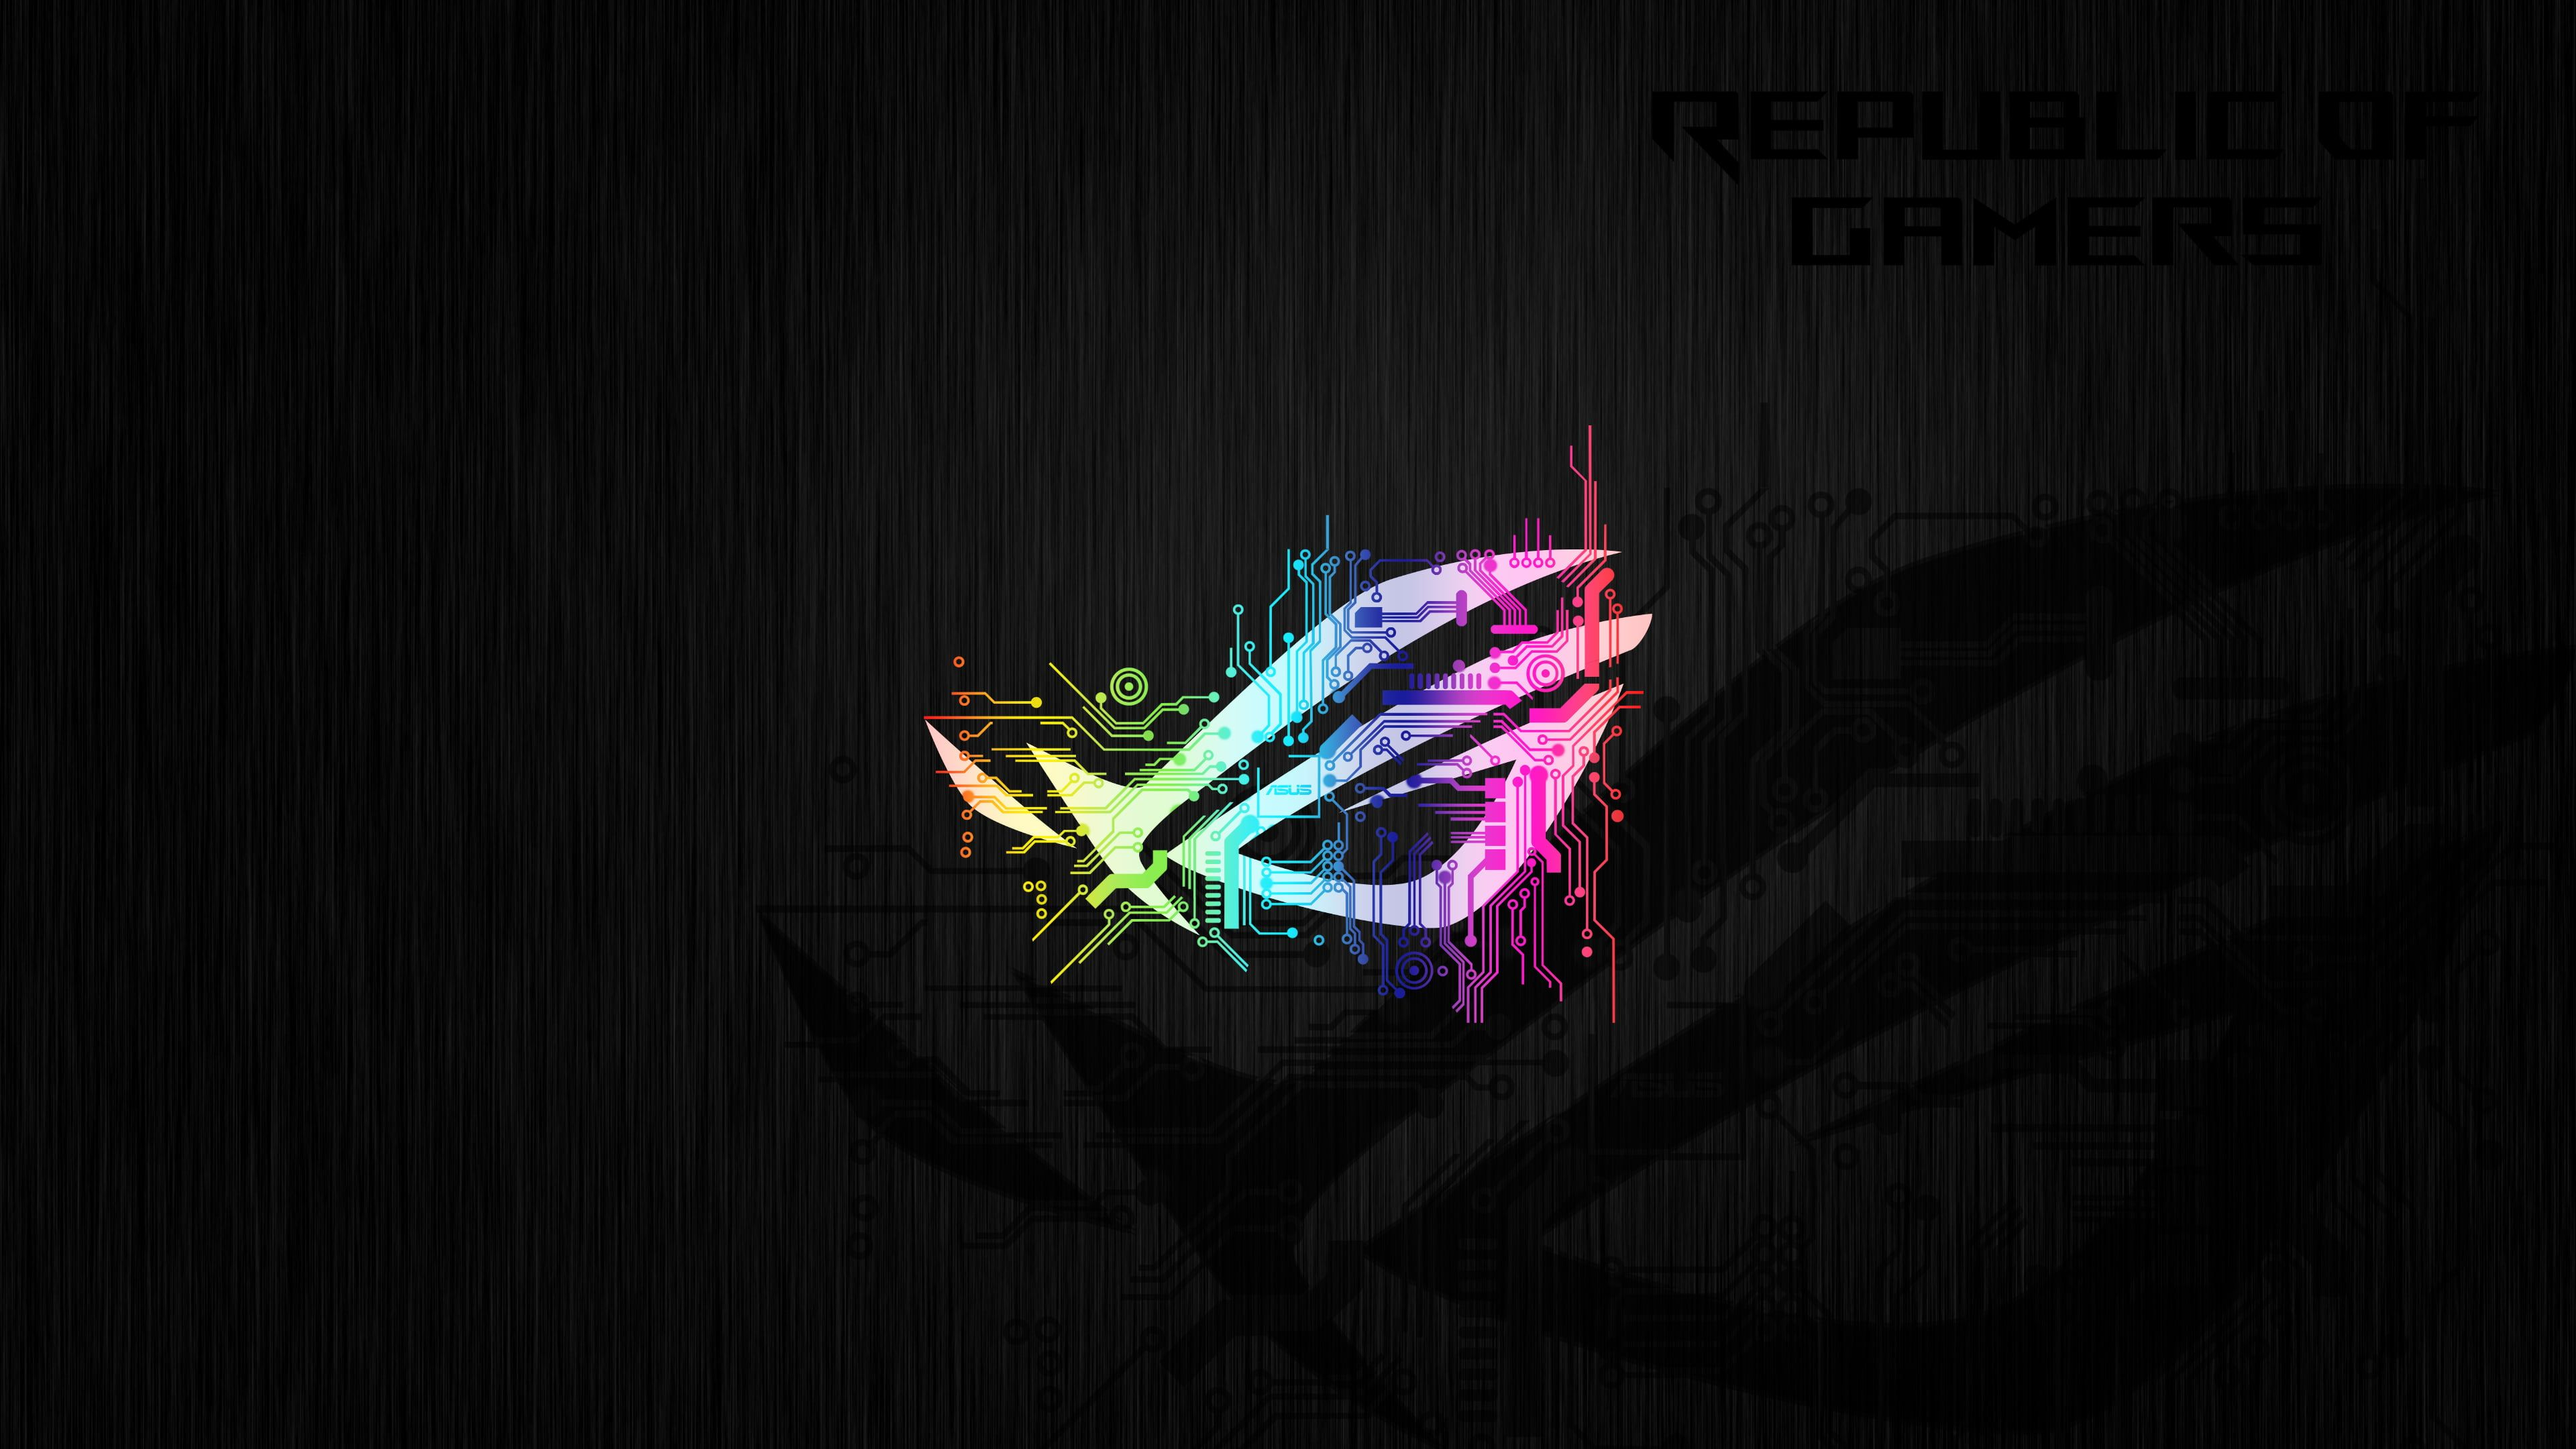 Technology Asus Rog 4k Wallpaper Hdwallpaper Desktop In 2020 Cool Wallpapers For Phones 4k Gaming Wallpaper Mobile Wallpaper